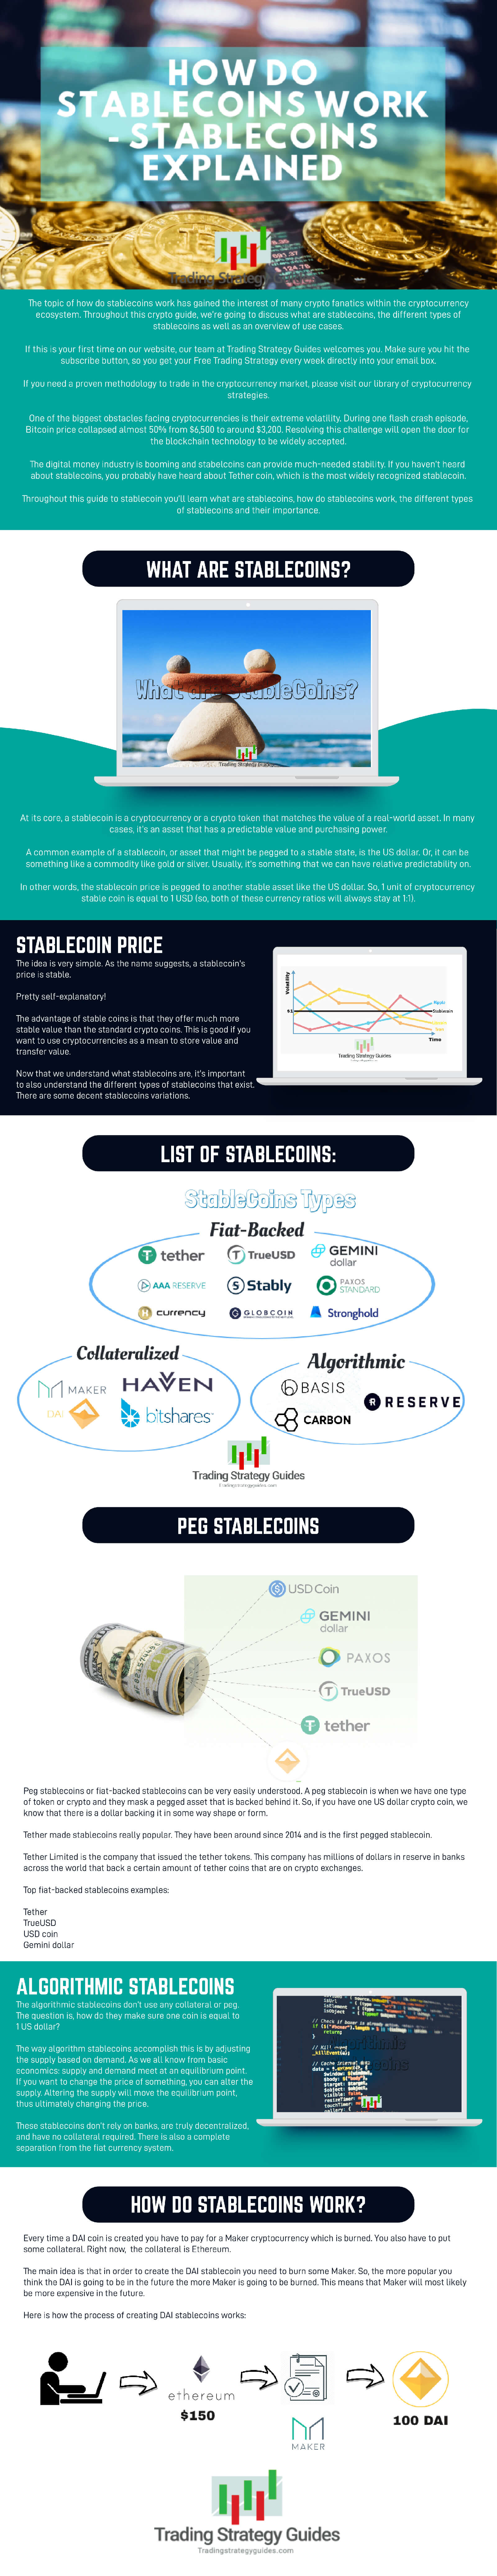 stablecoin infographic